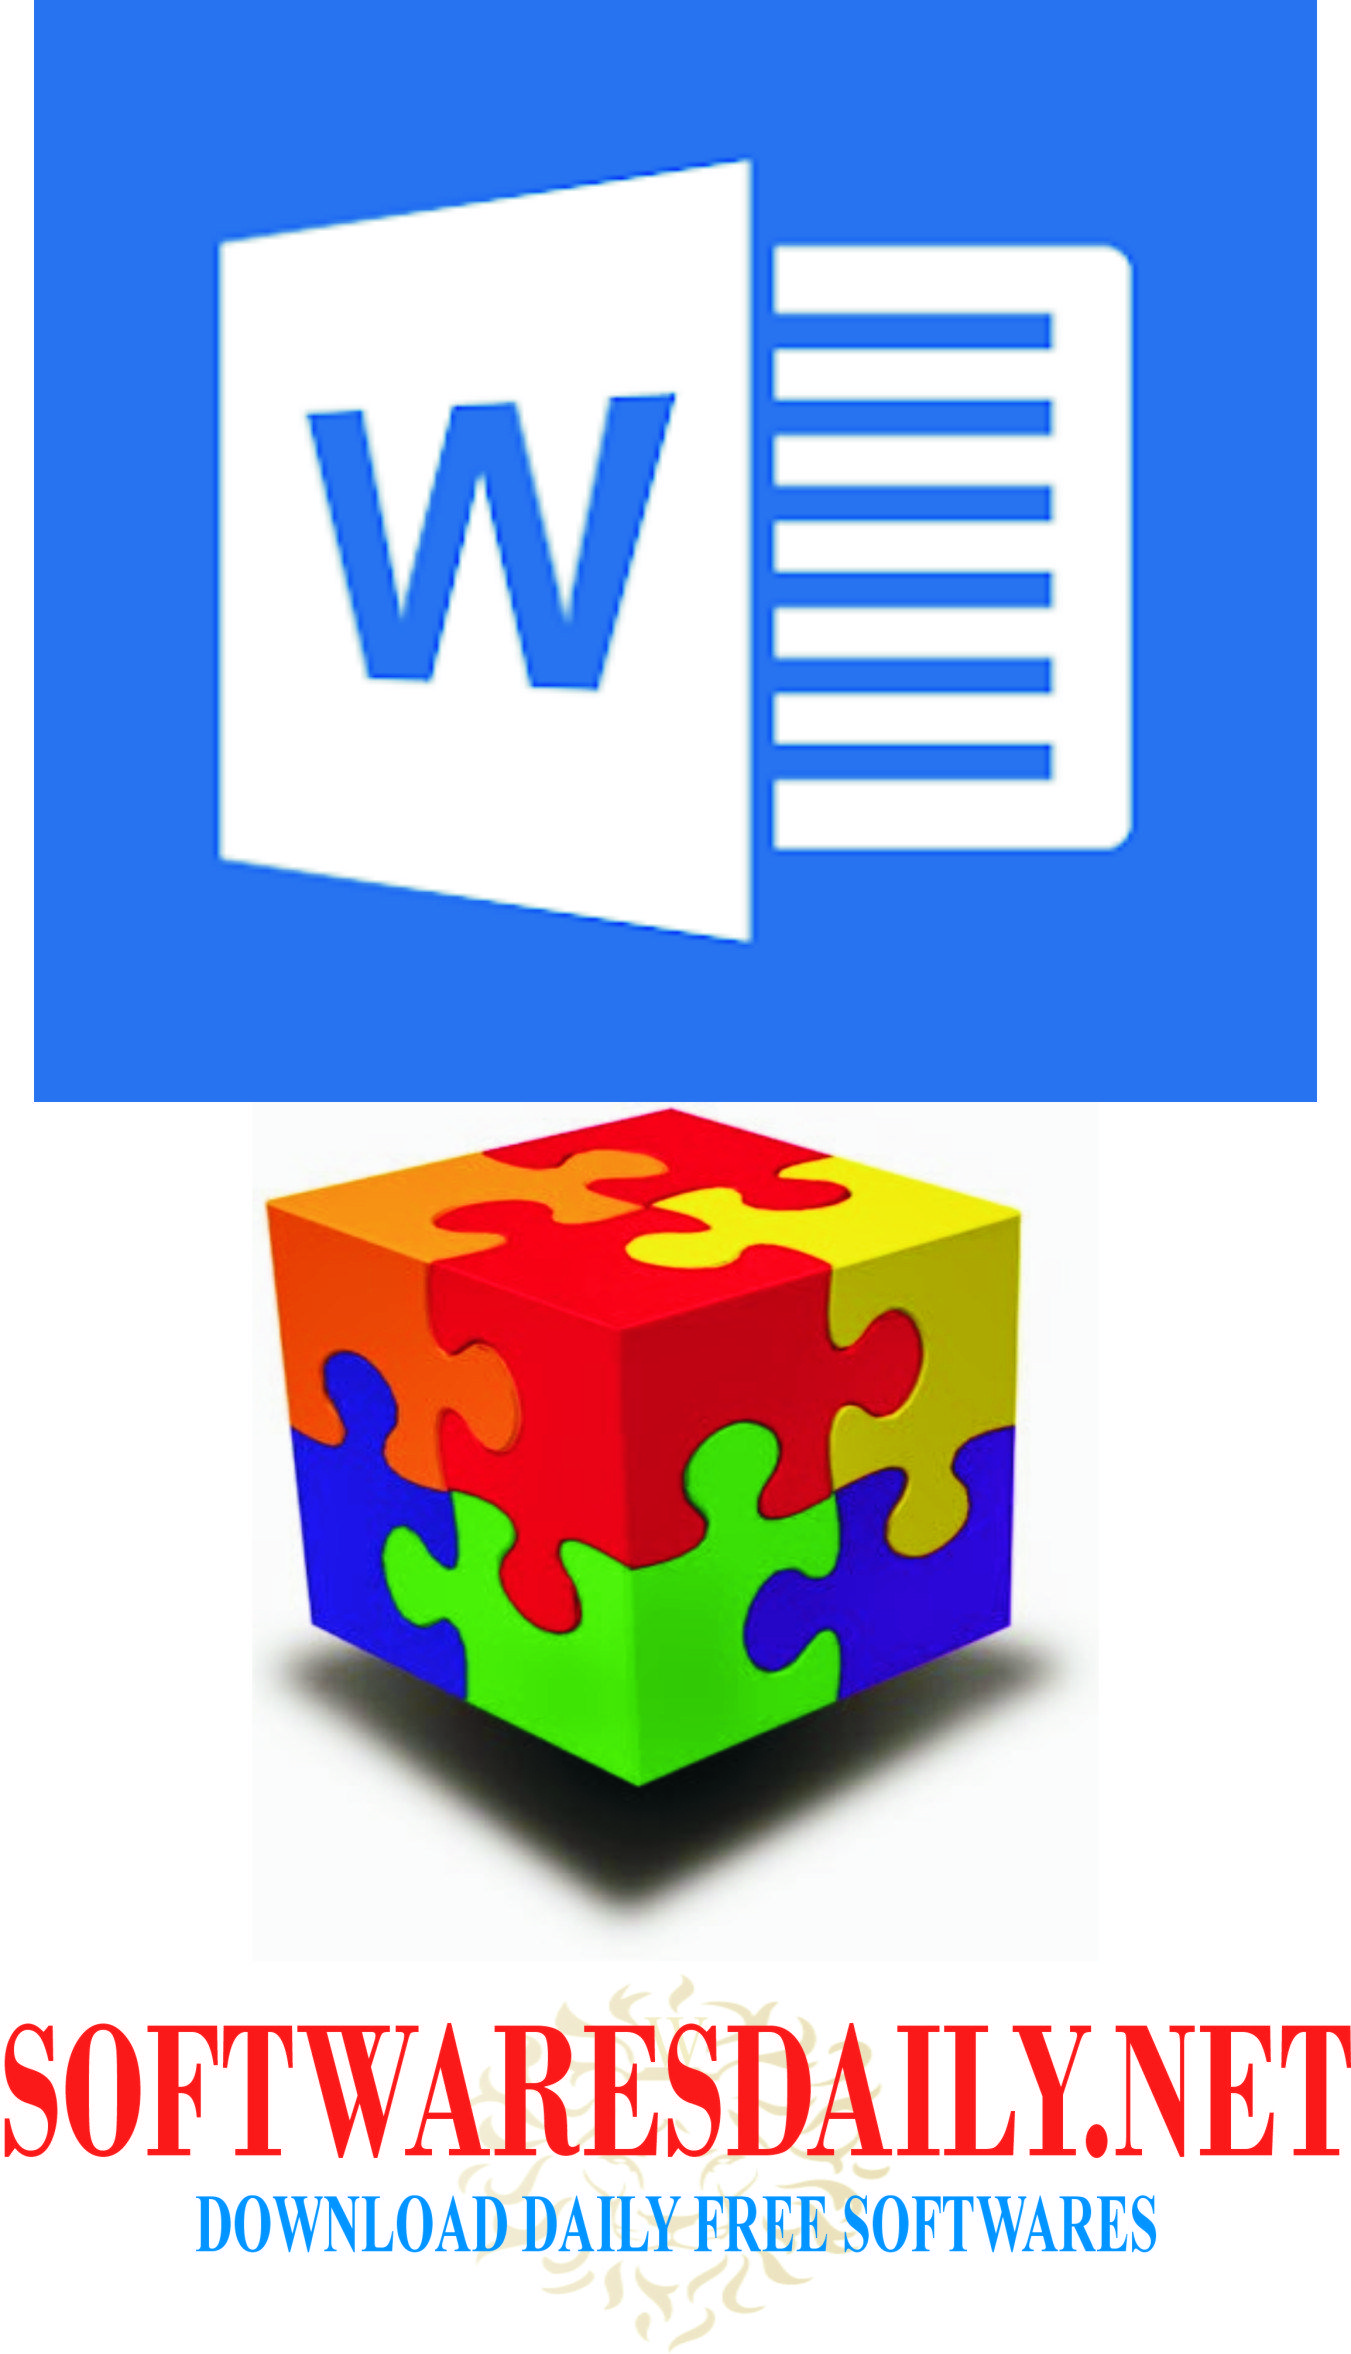 Microsoft Word 16.0.8625.2046 APK Full Android Free